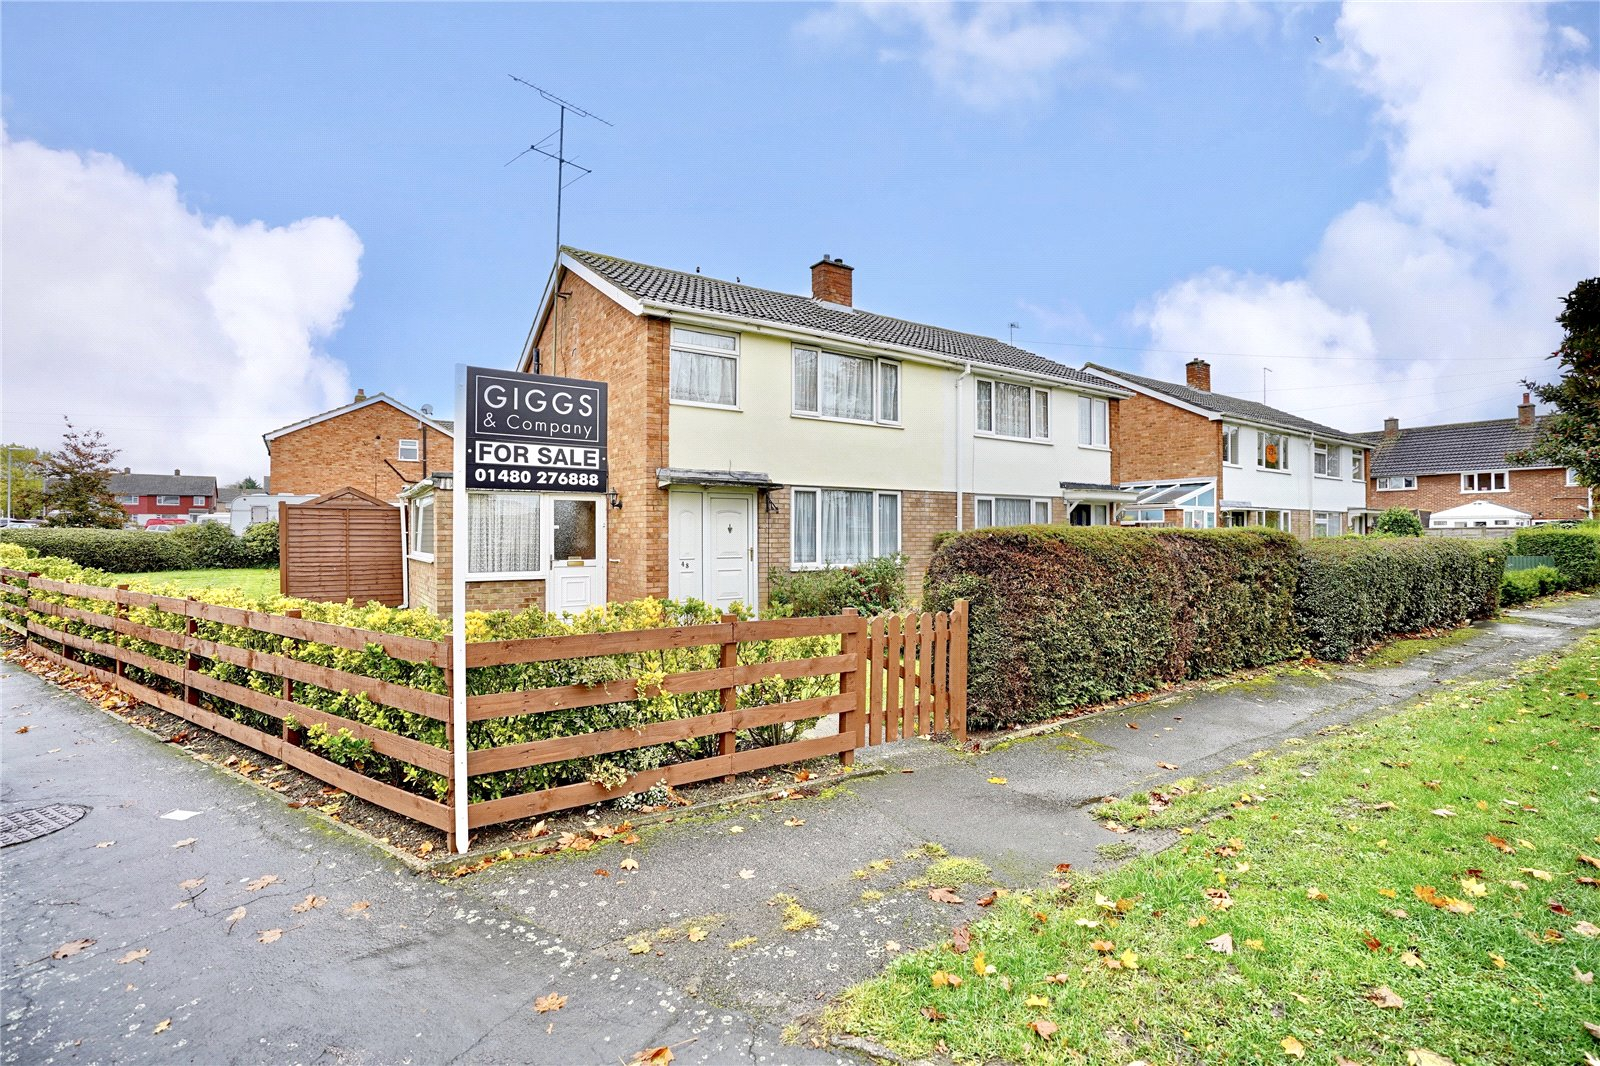 3 bed house for sale in St. Neots, PE19 1SH, PE19